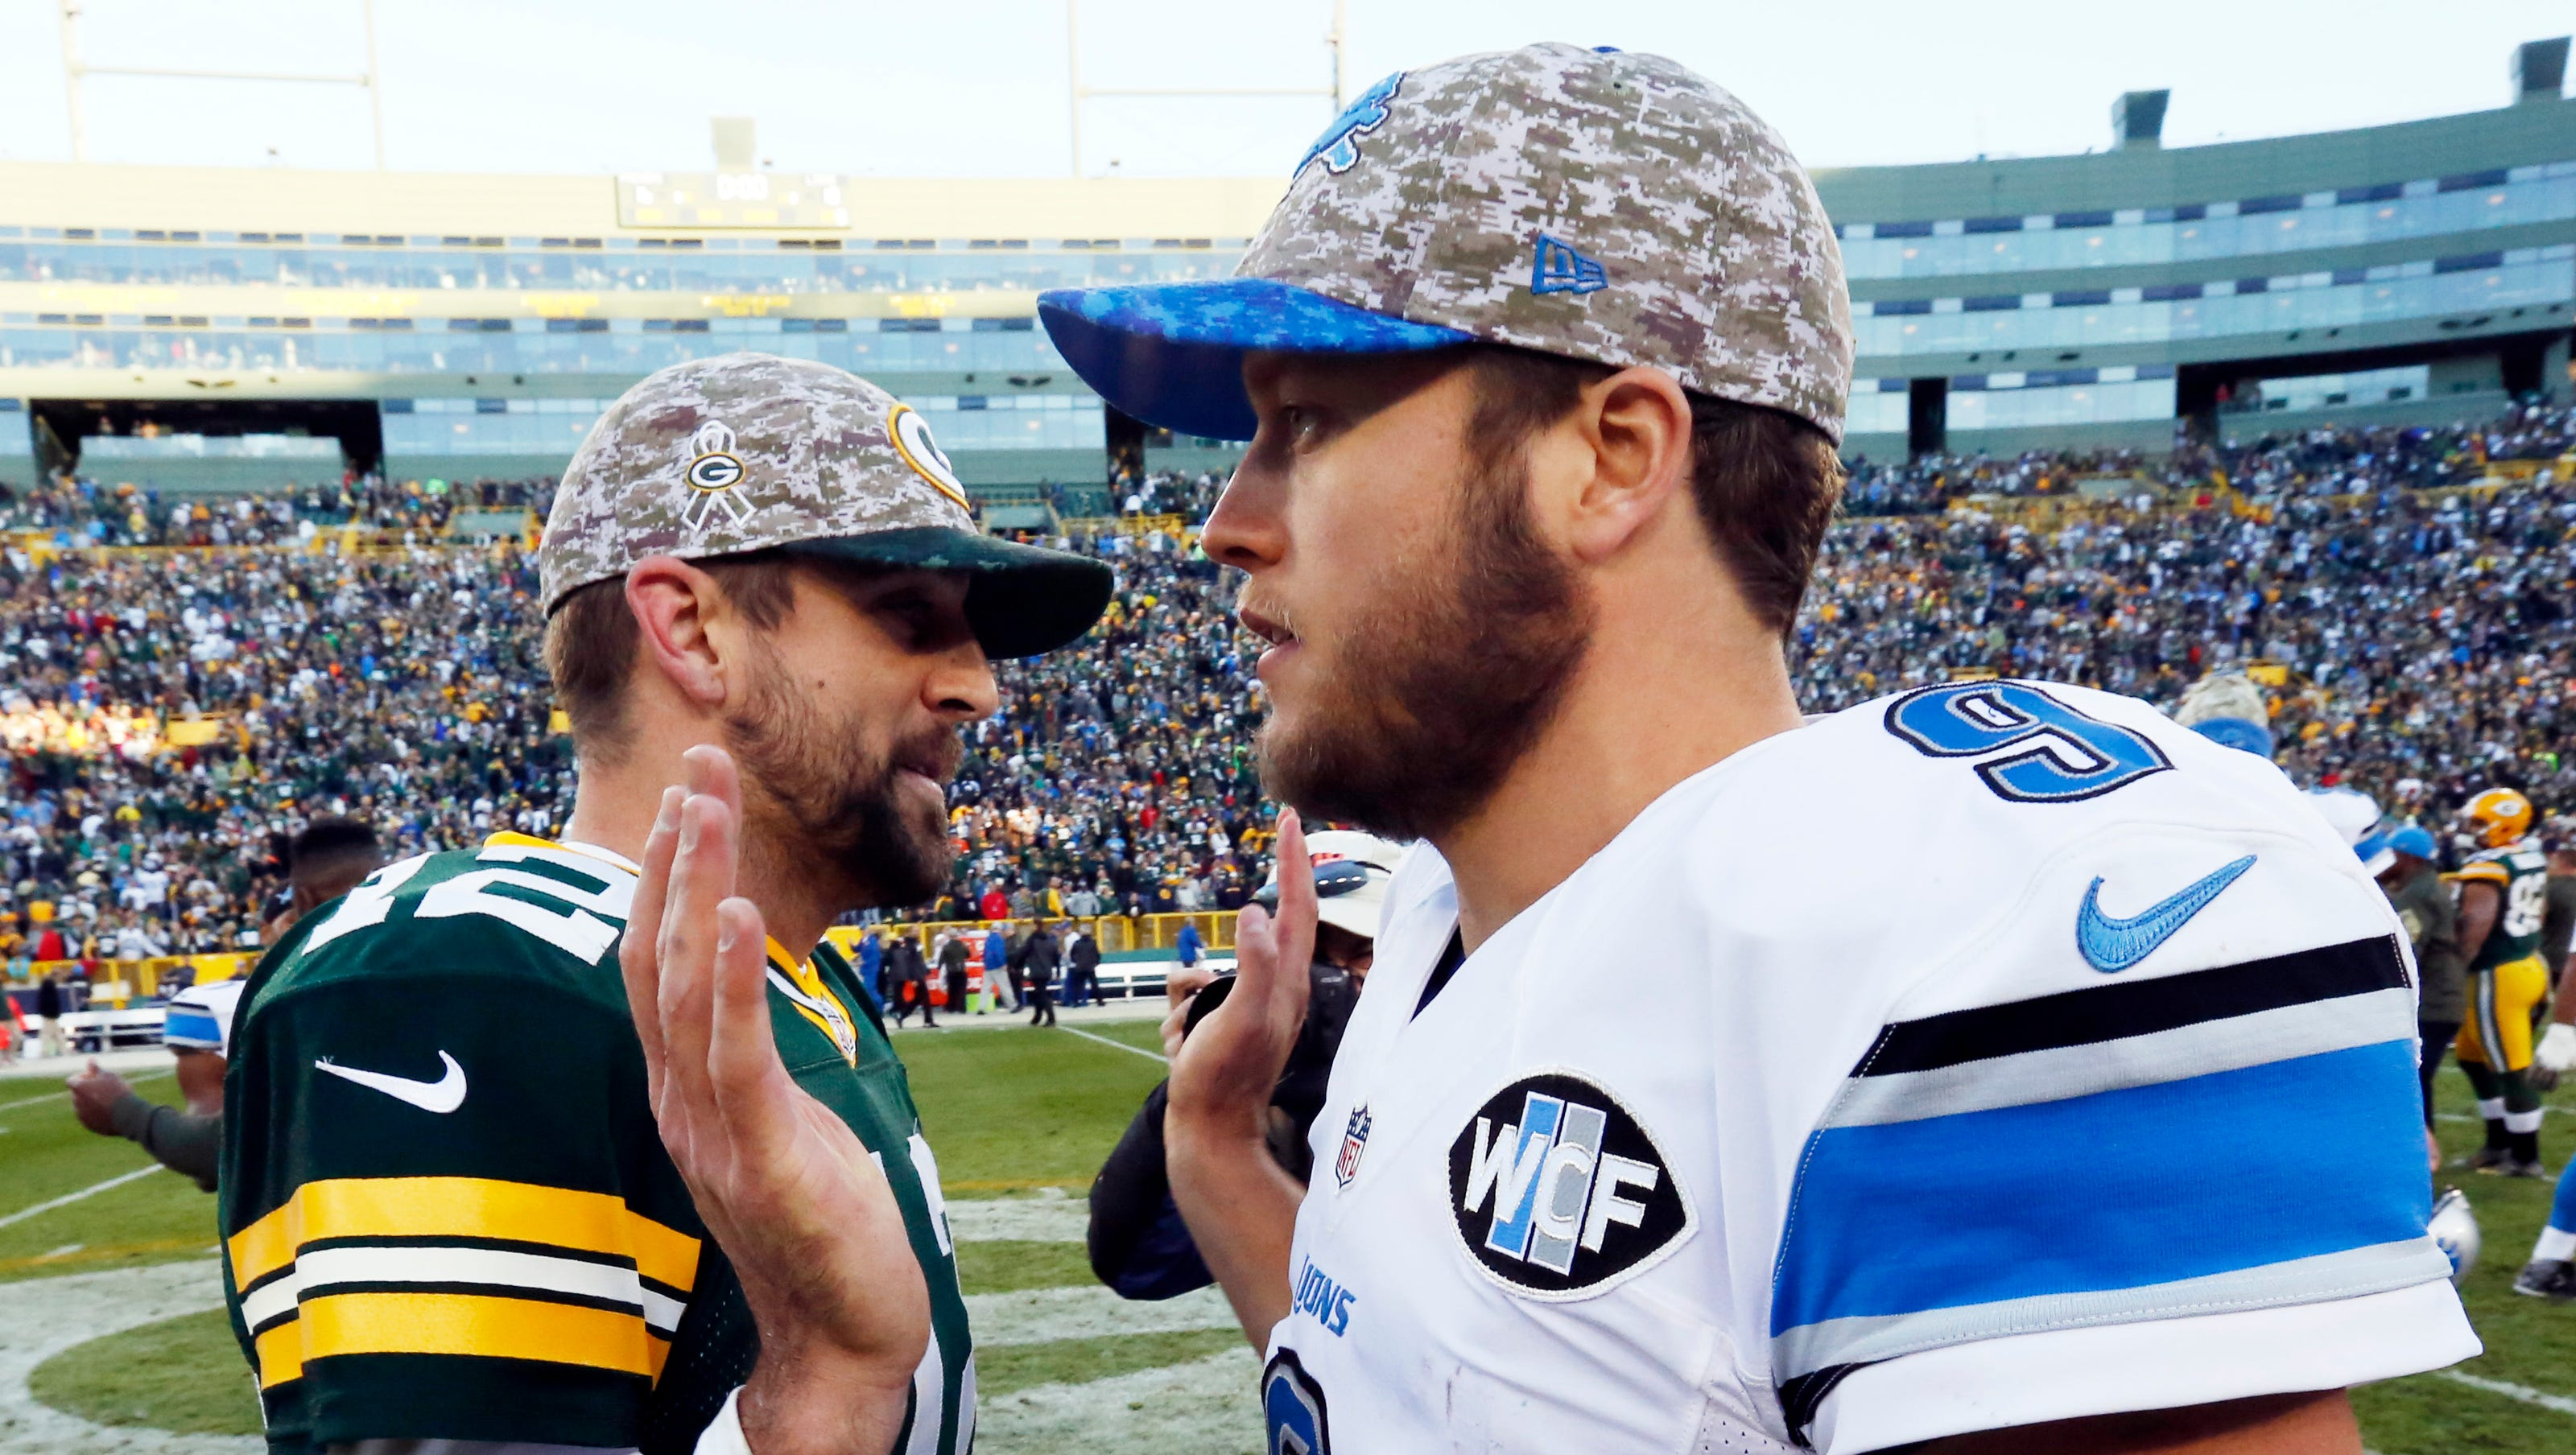 636161836040953961-ap-rodgers-stafford-football